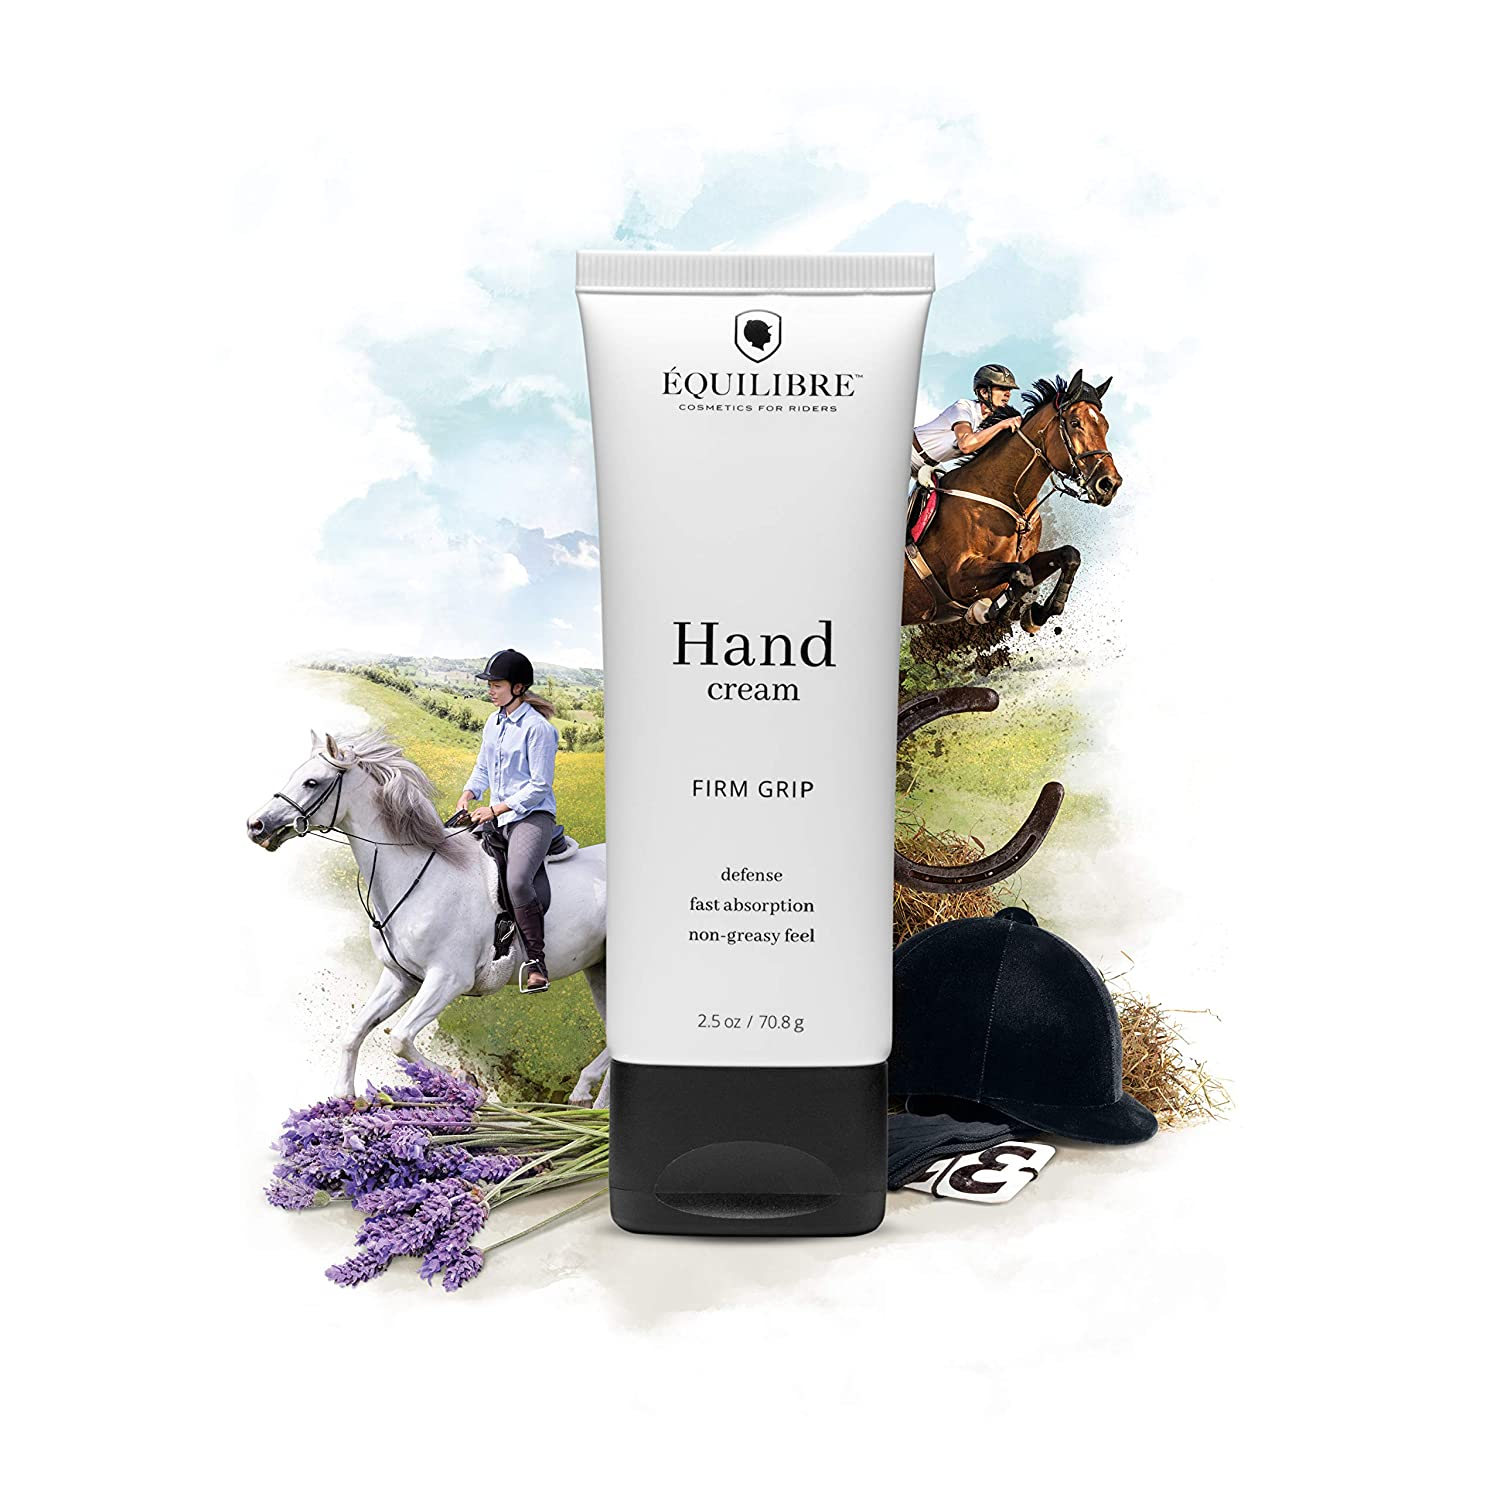 Équilibre – Cosmetics For Equestrians – Hand Cream 'Firm Grip' – Vegan, Cruelty-Free, Organic Lavender Essence, Supports Horse Rescues, Tested on Riders – 2.5 oz / 70.8 g